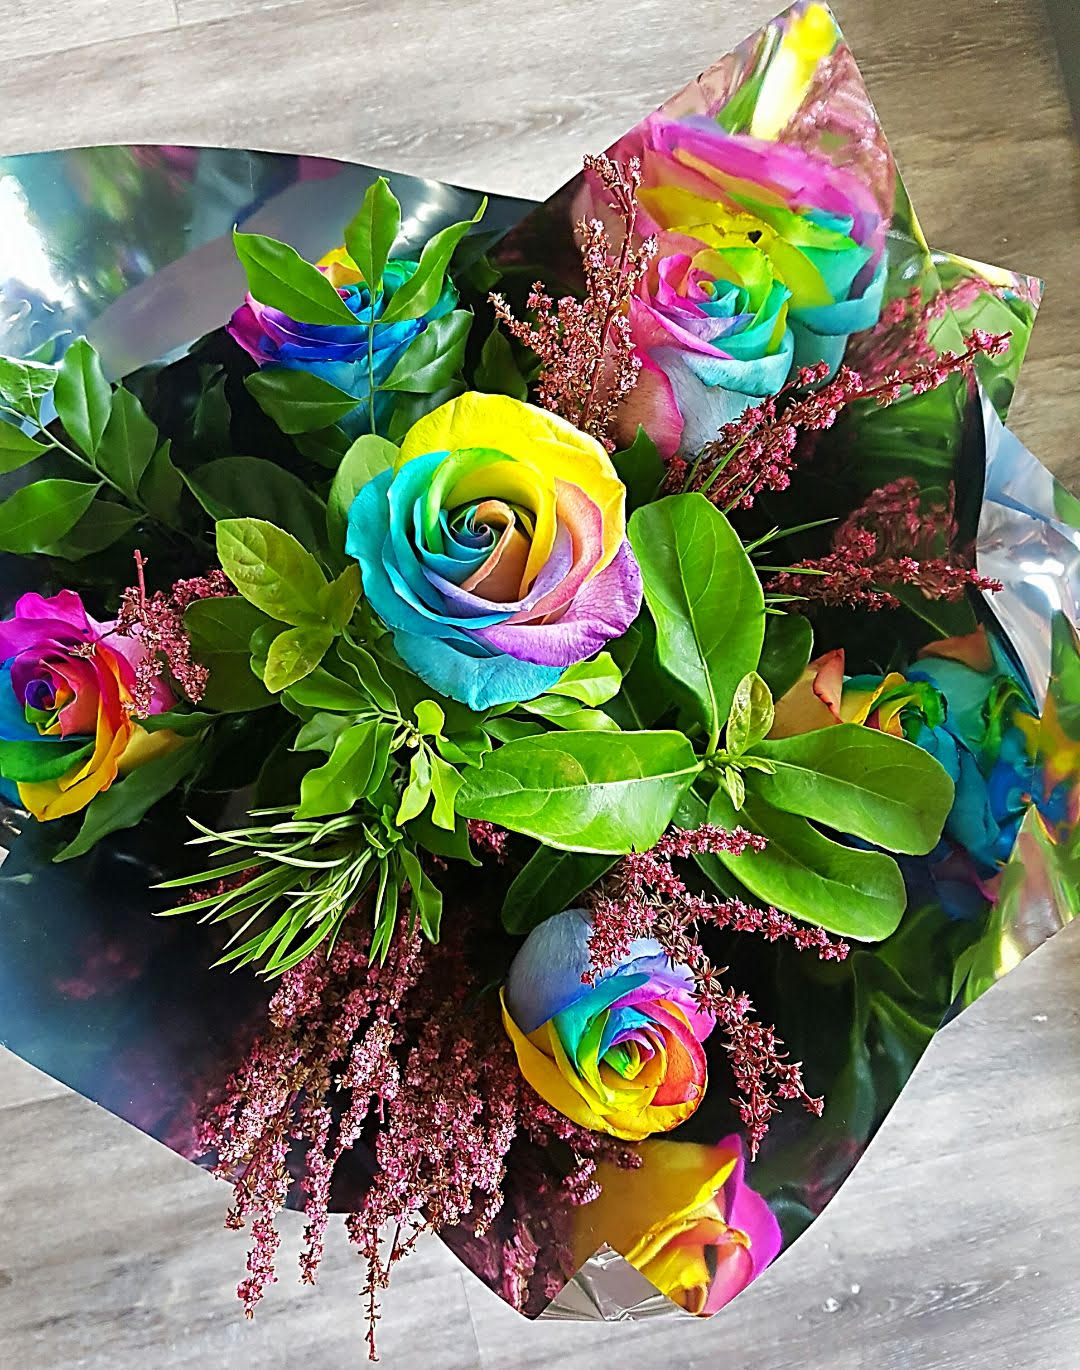 For a limited time enjoy the amazing colours of the rainbow roses. Six beautiful rainbow roses gift wrapped with greenery, will surely be a talking point with the recipient.